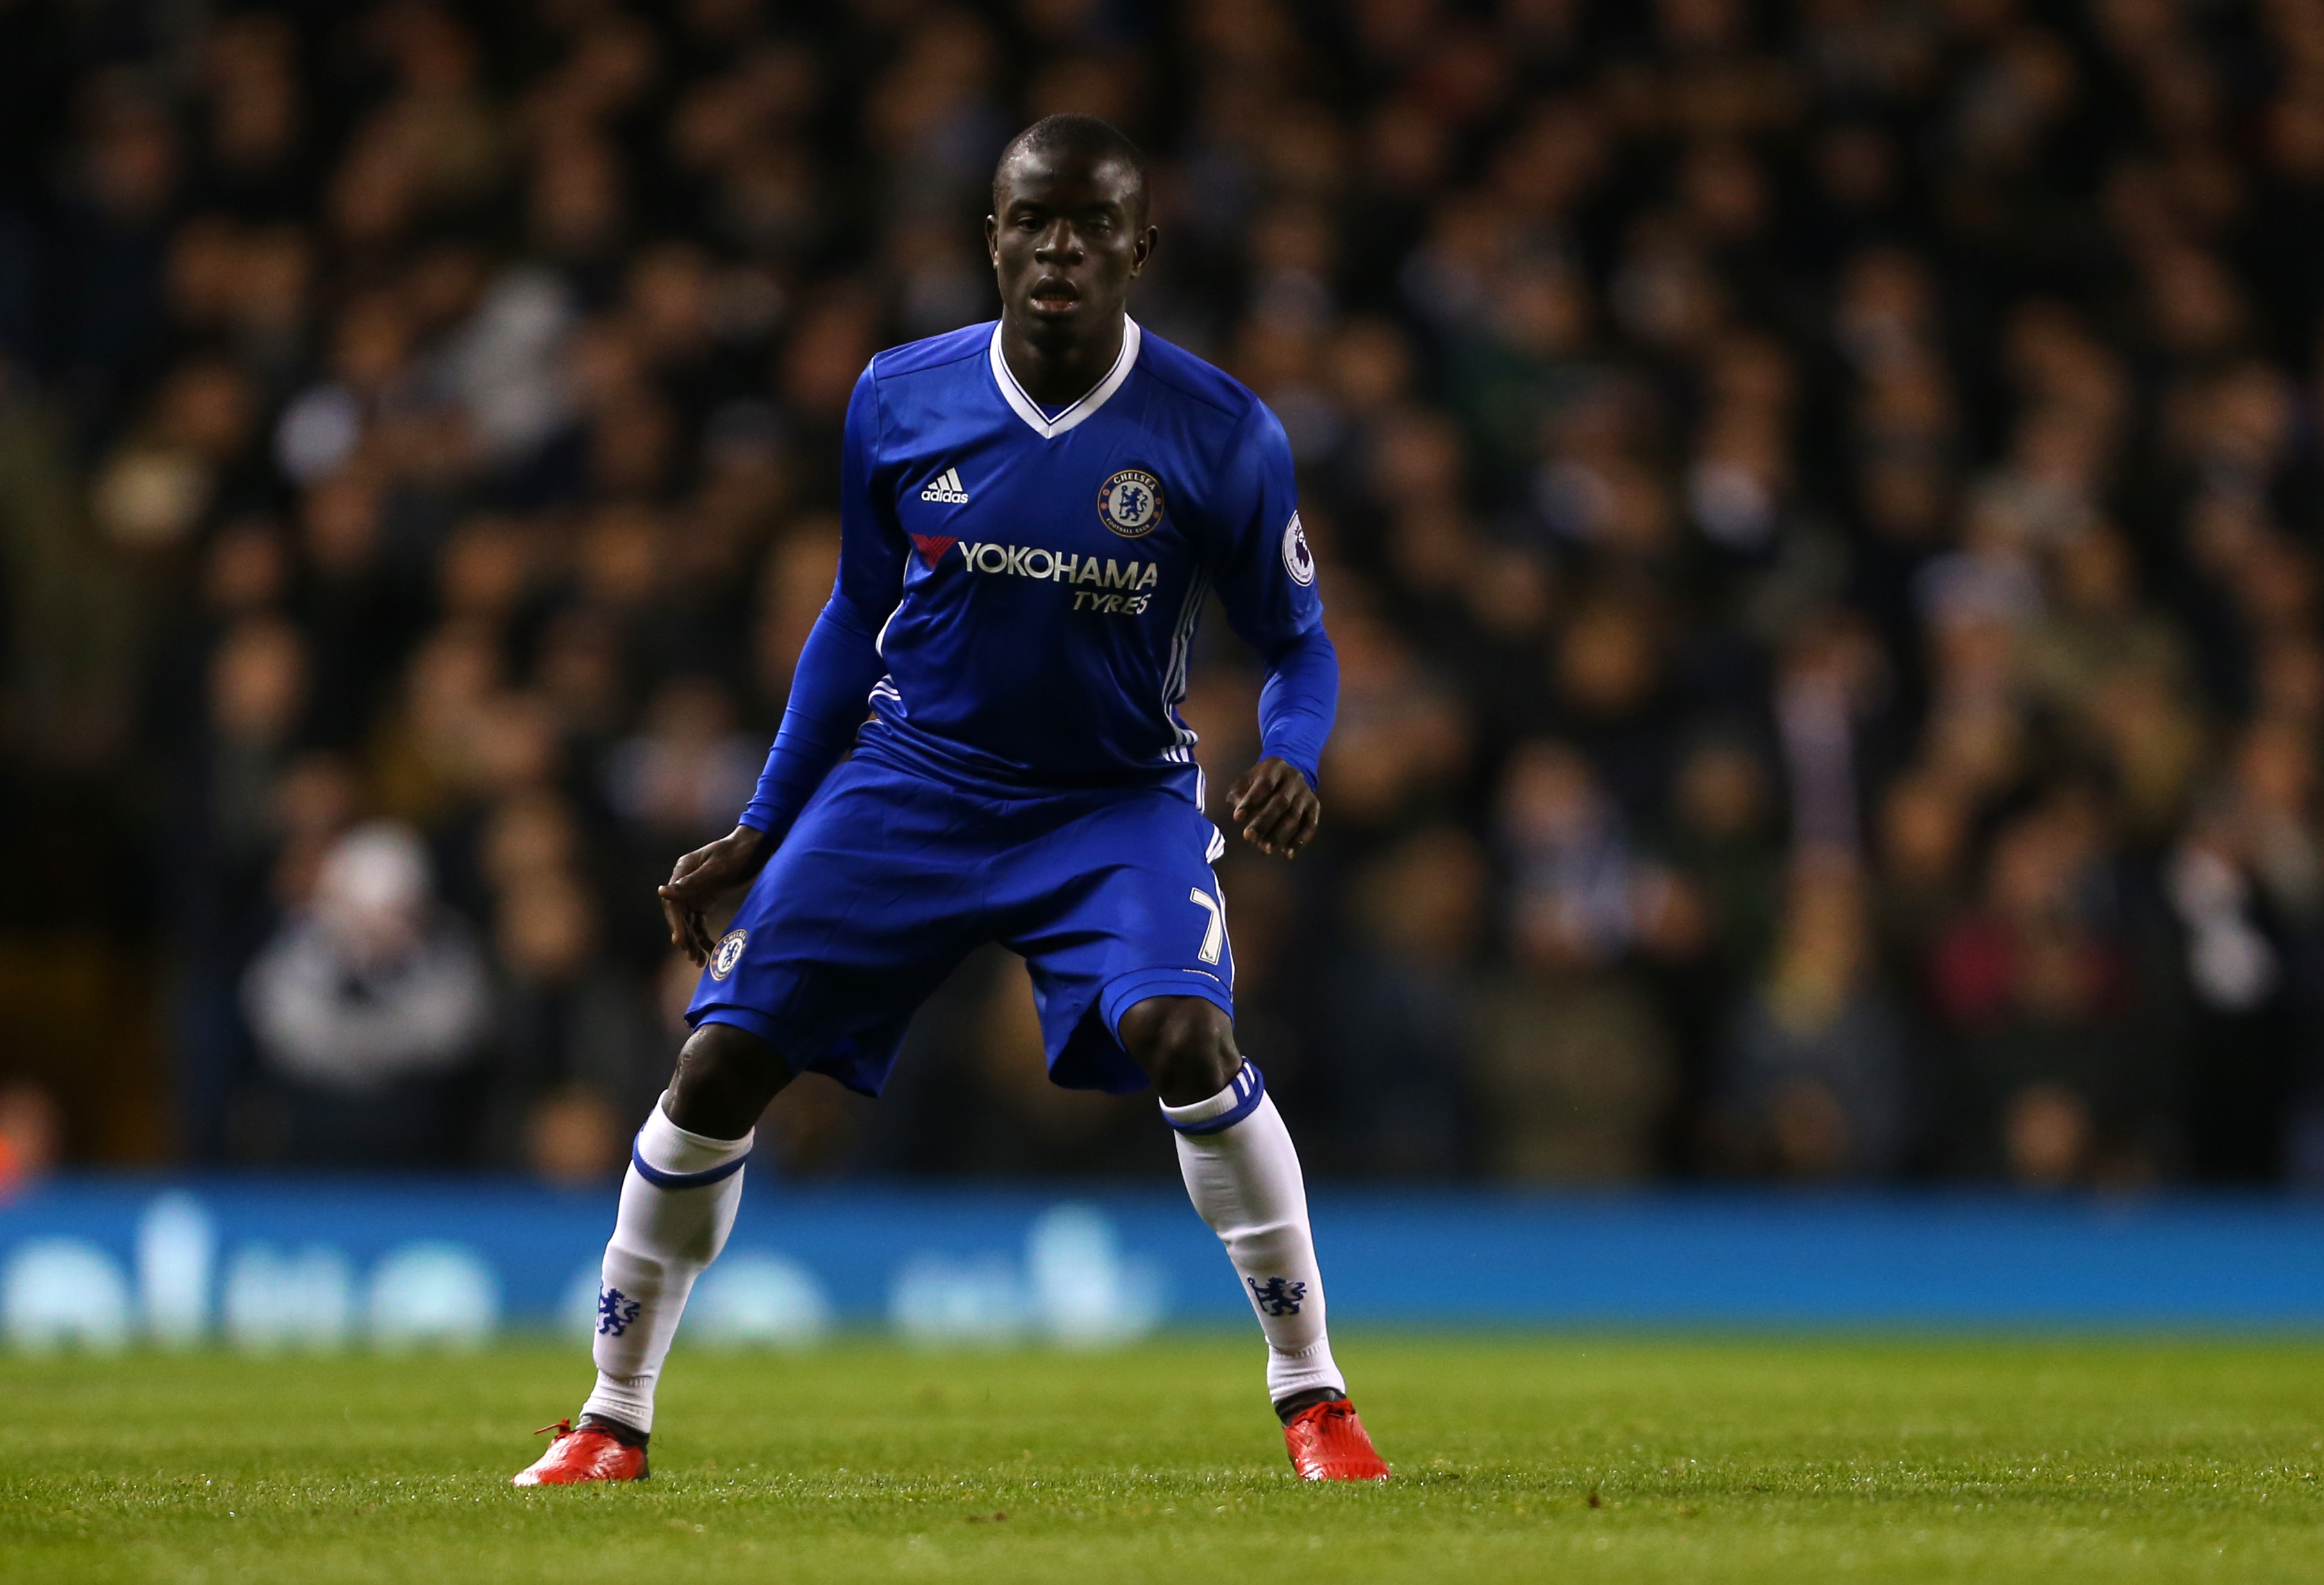 Chelsea's N'Golo Kante is a throwback to Patrick Vieira and Roy Keane – and could be the next legendary Premier League midfielder